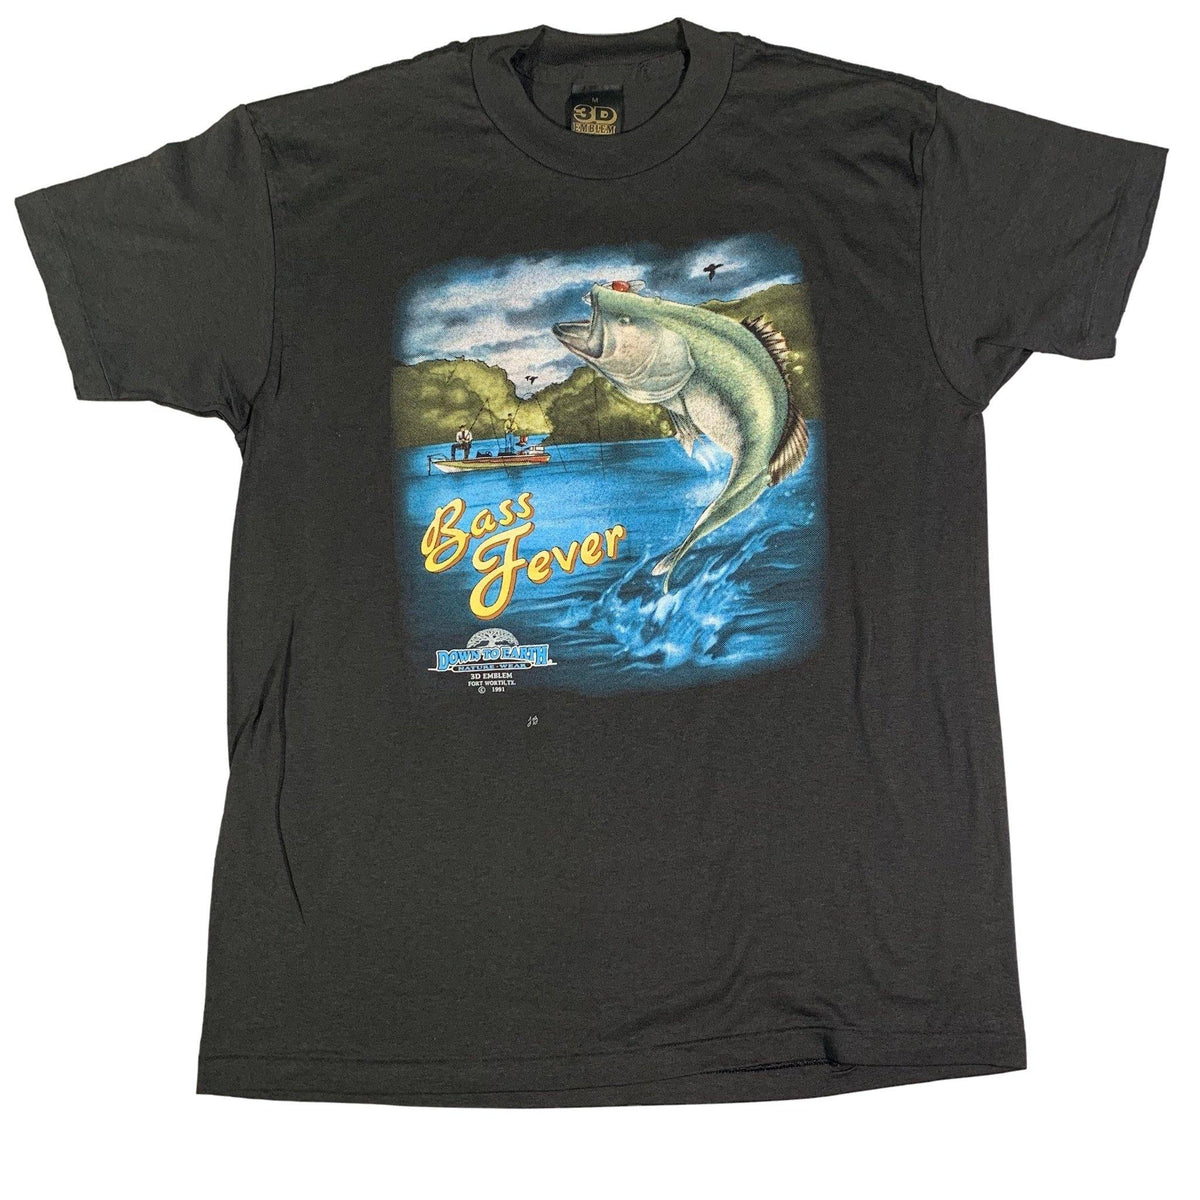 "Vintage 3D Emblem ""Down To Earth"" Bass Fever T-Shirt - jointcustodydc"